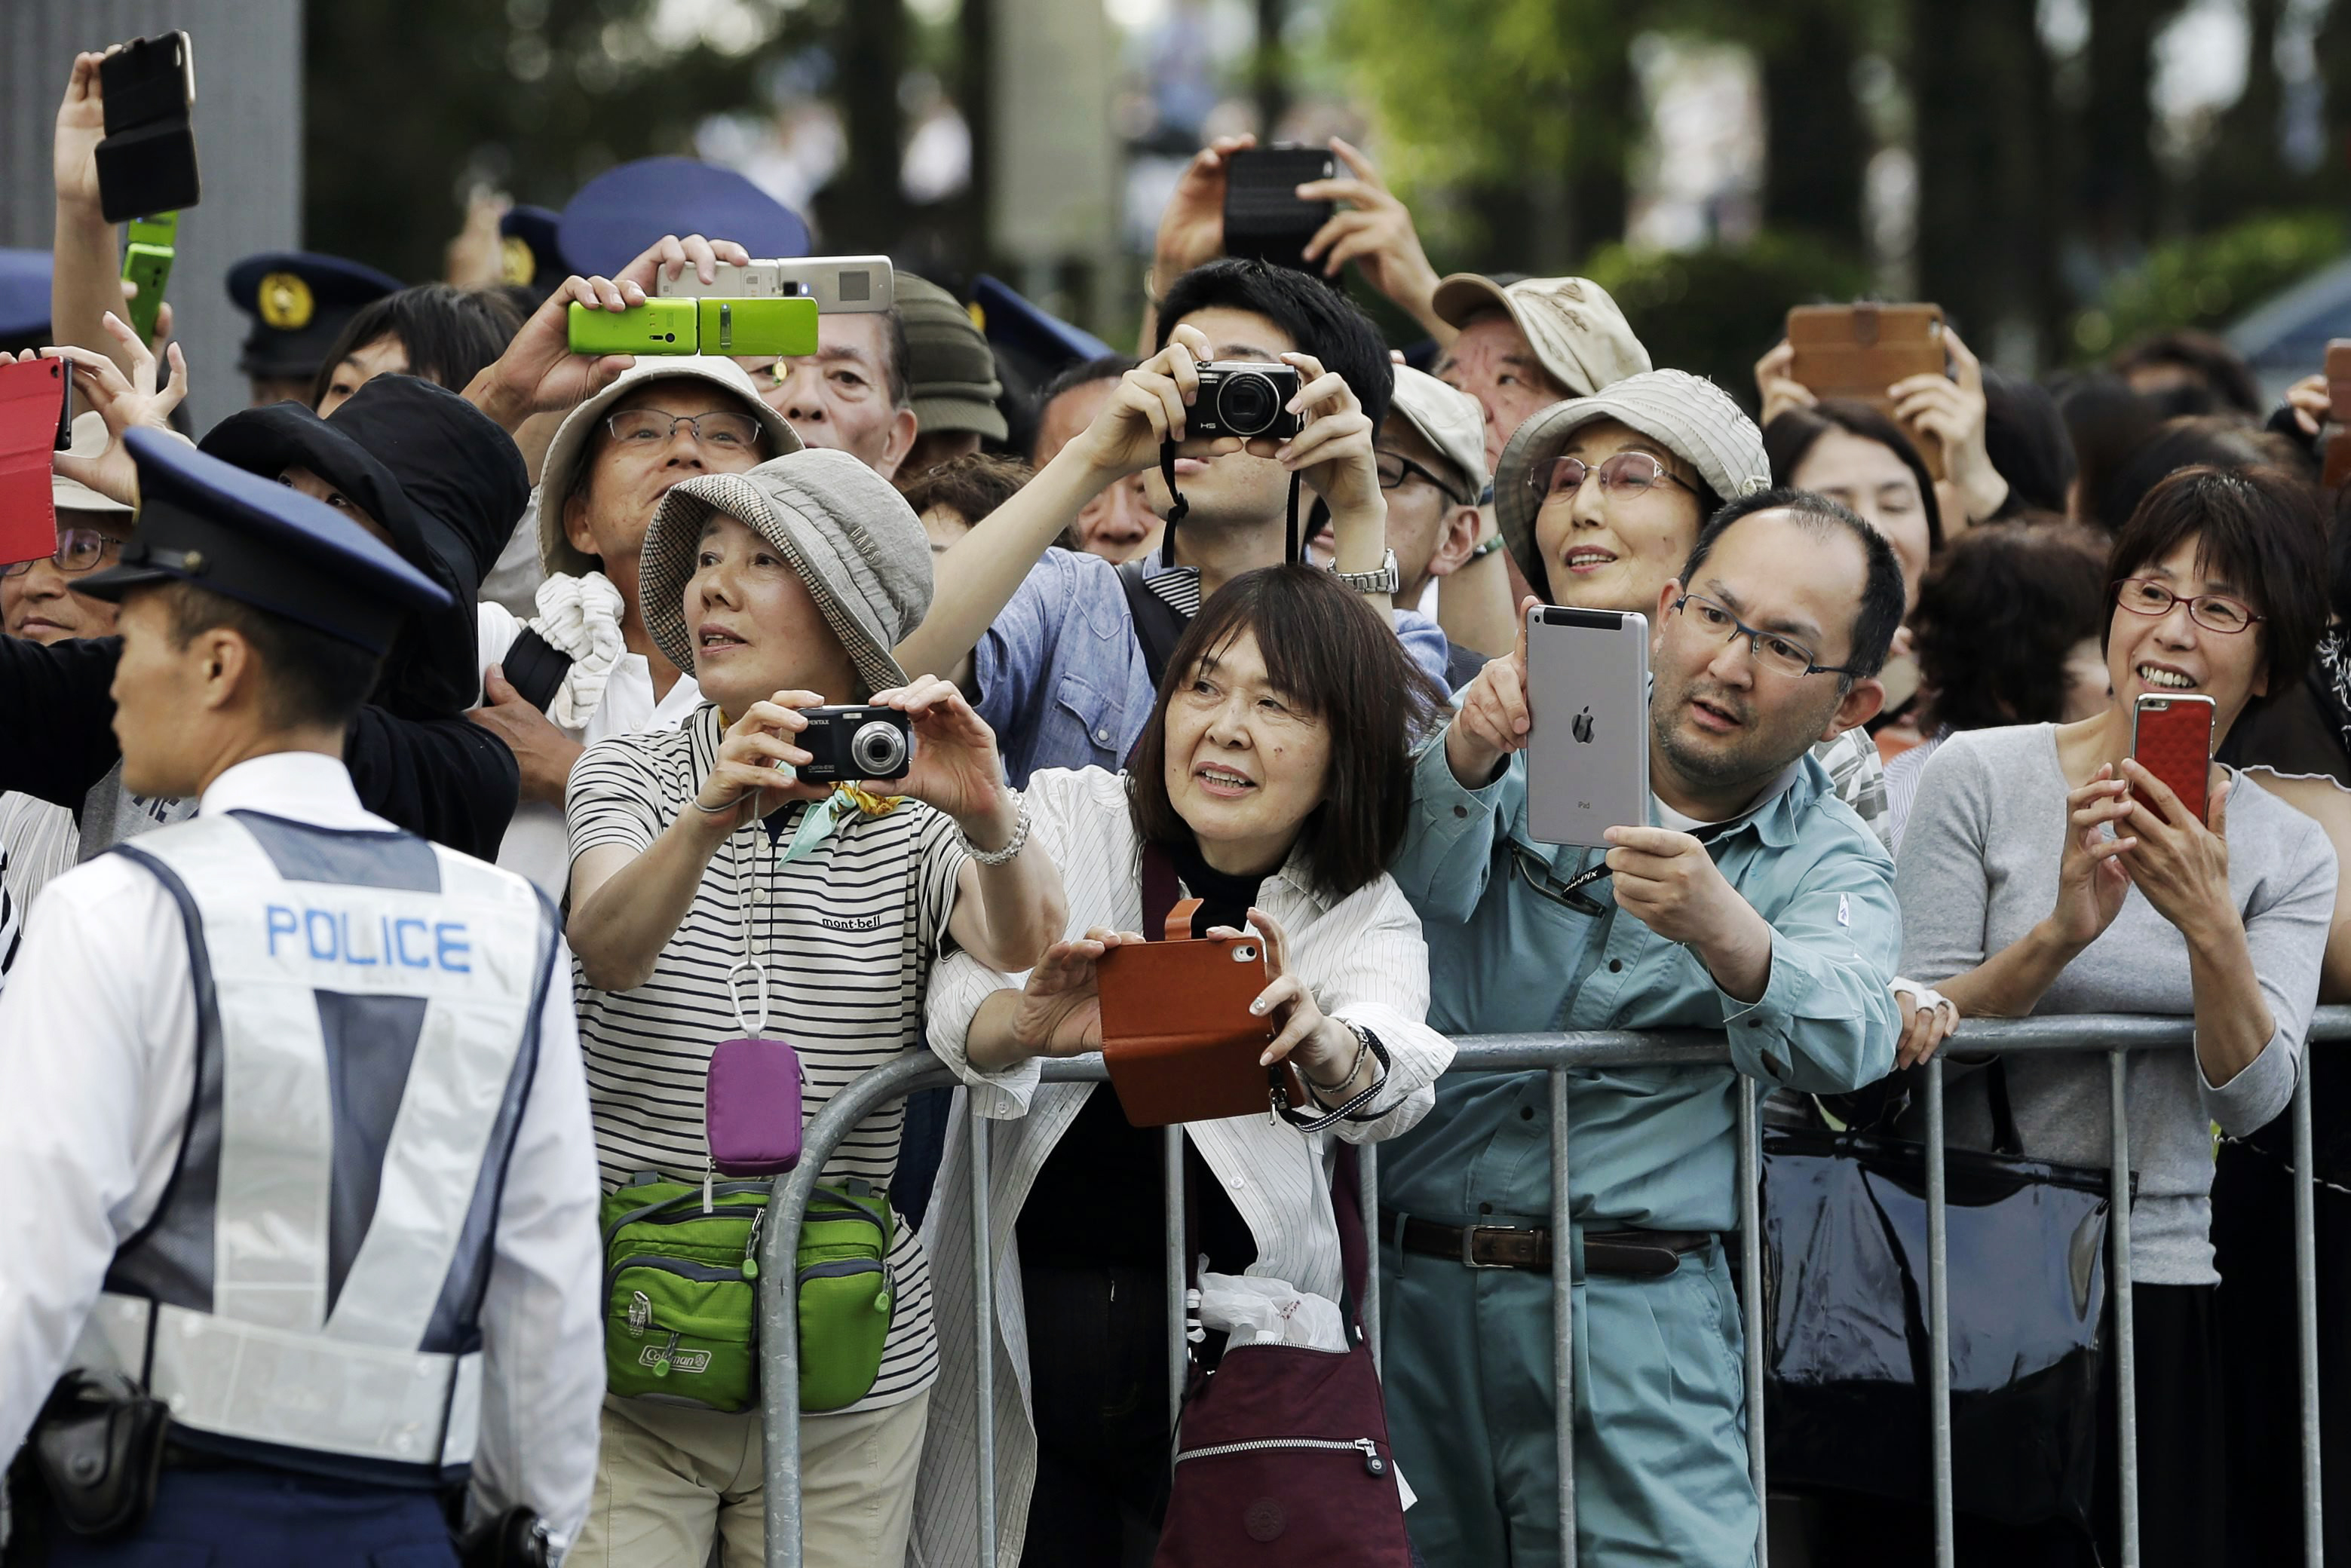 People gather to watch the arrival of President Barack Obama around Hiroshima Peace Memorial Park in Hiroshima, on May 27, 2016.